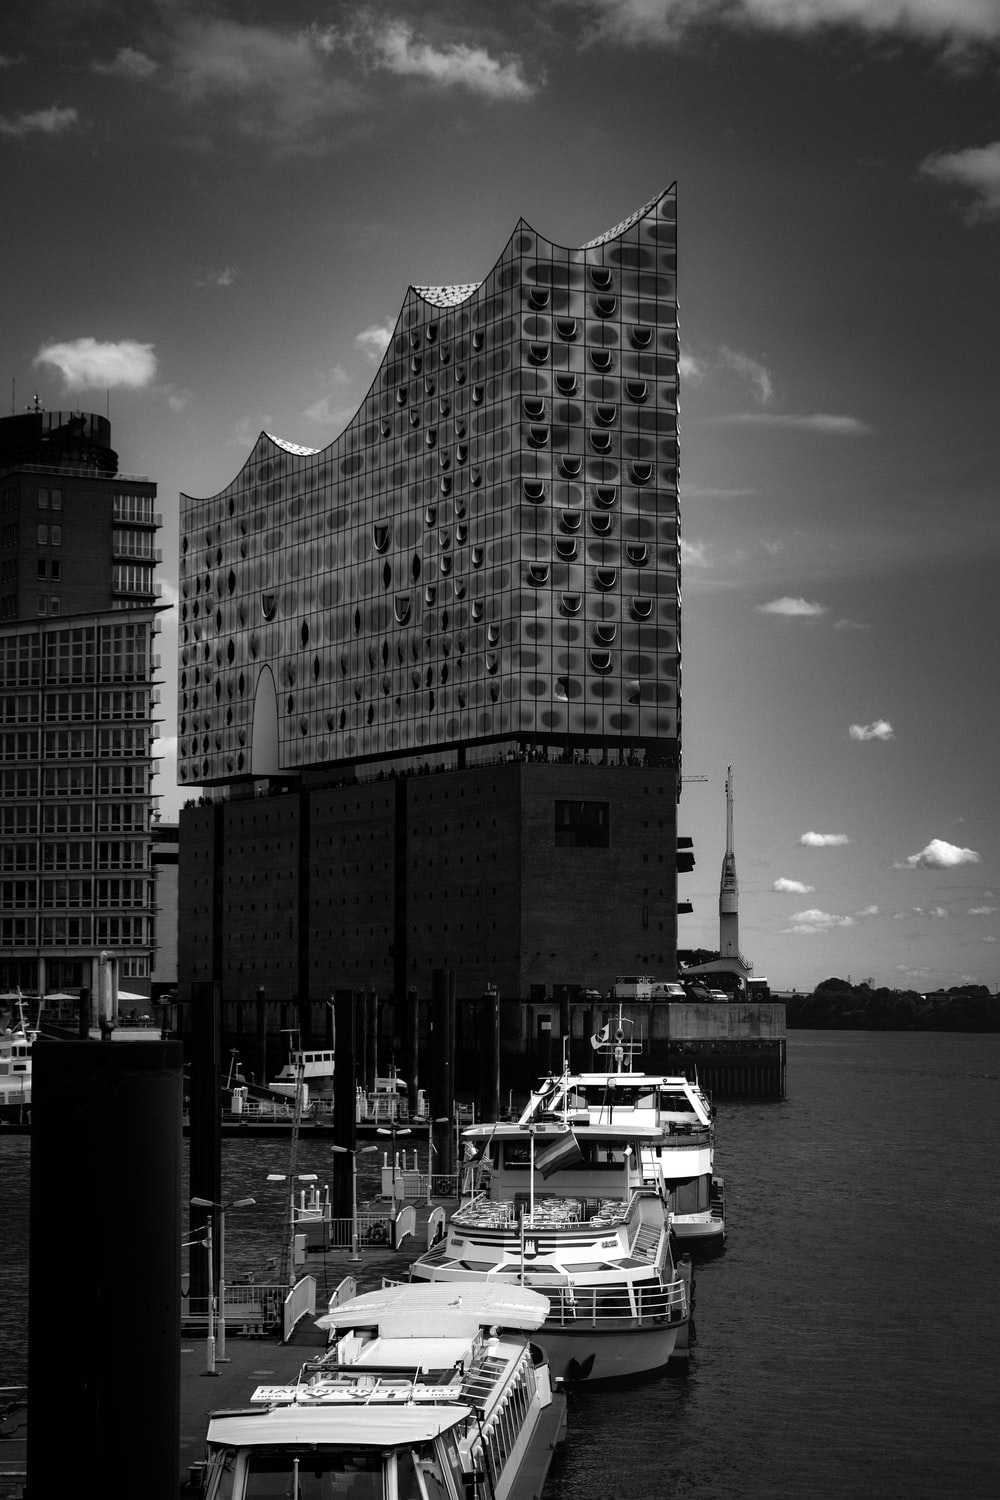 grayscale photo of high rise building near body of water